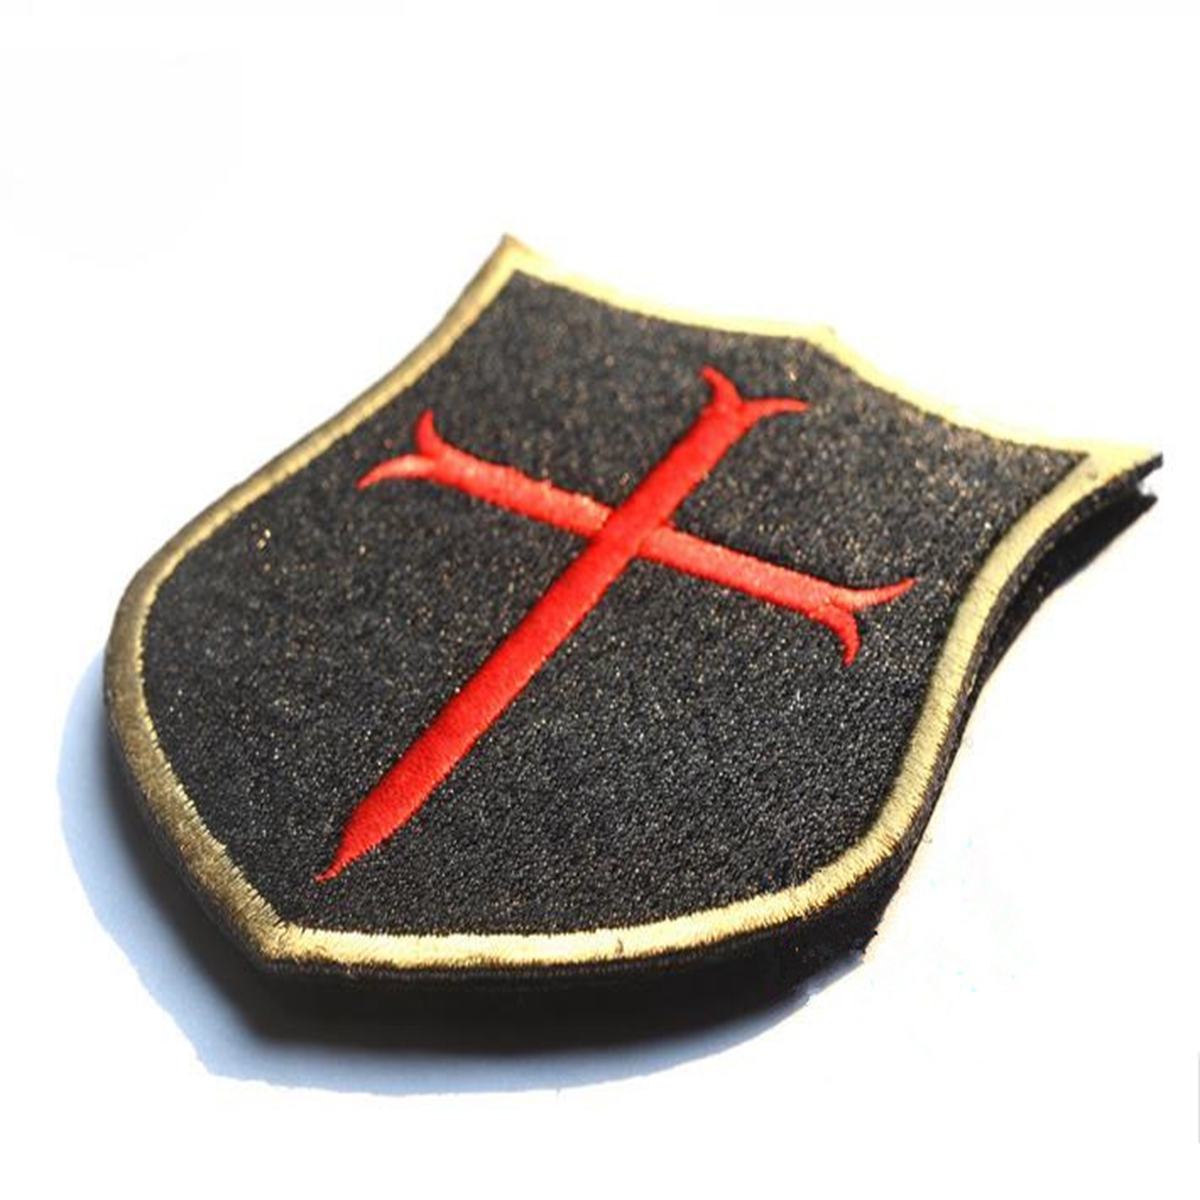 3D PVC Motorcycle Embroidery Cross Crusader Tactical Badge Shield Morale Patch Seal